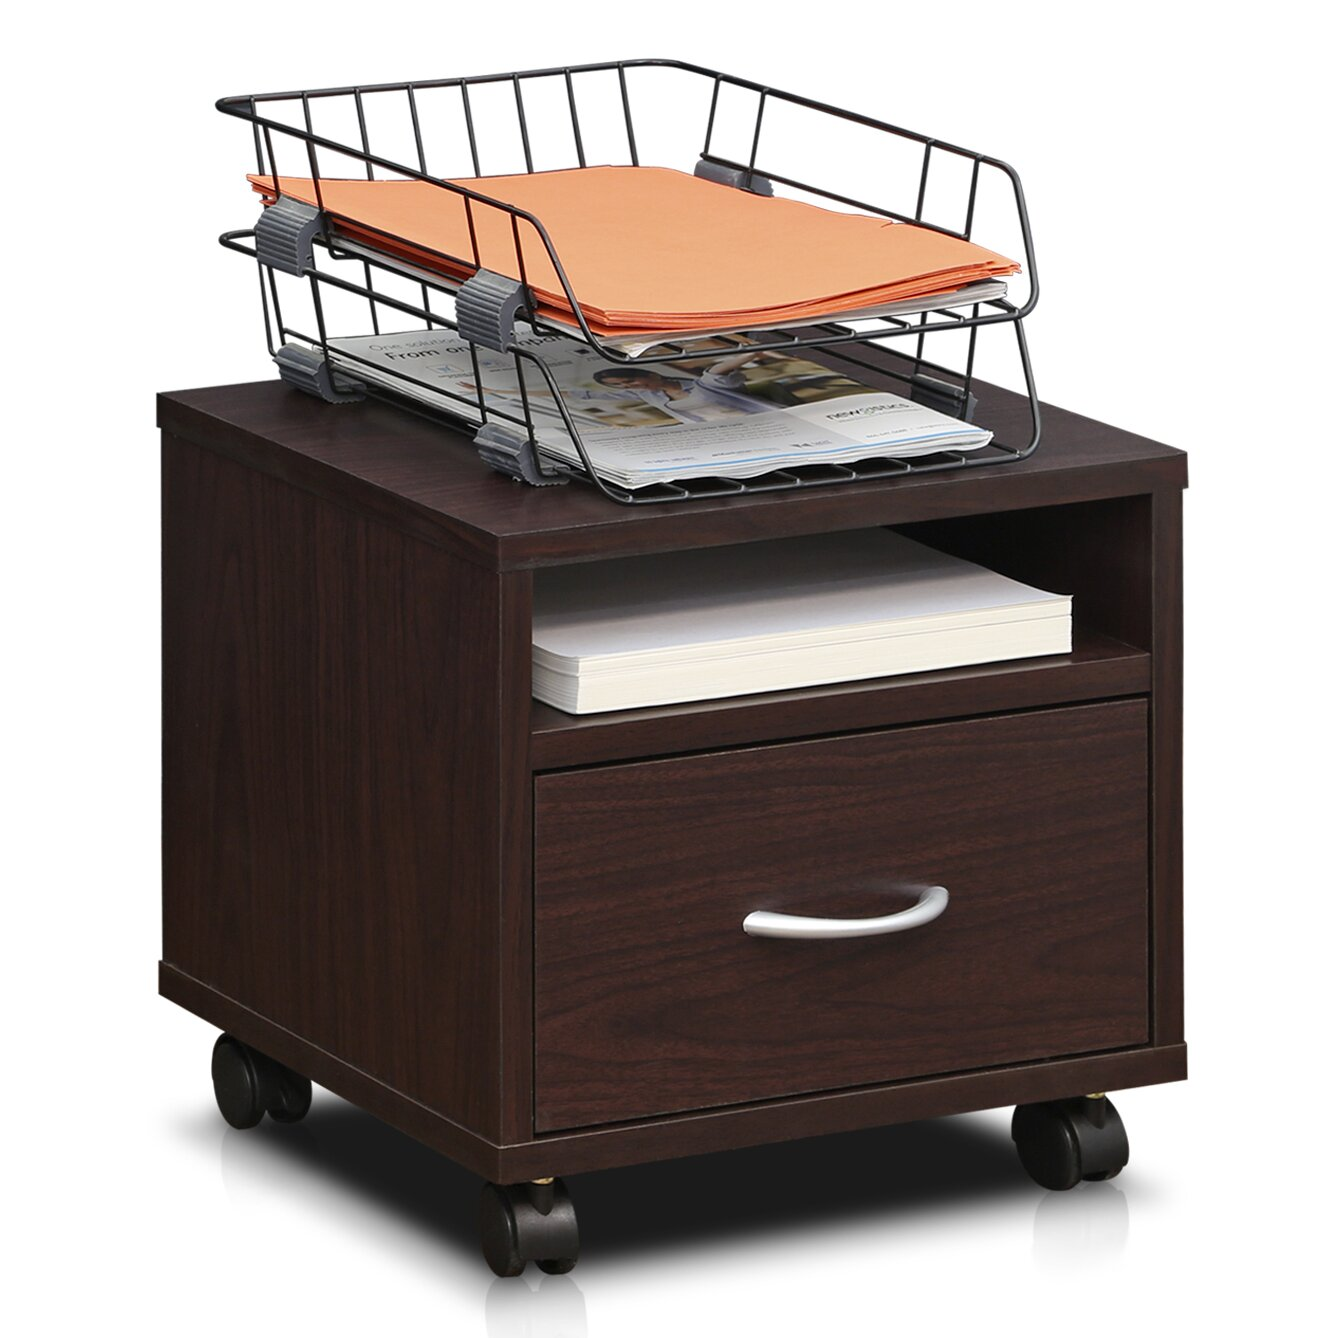 Furinno Indo Petite Under Desk Utility Cart with Casters & Reviews | Wayfair